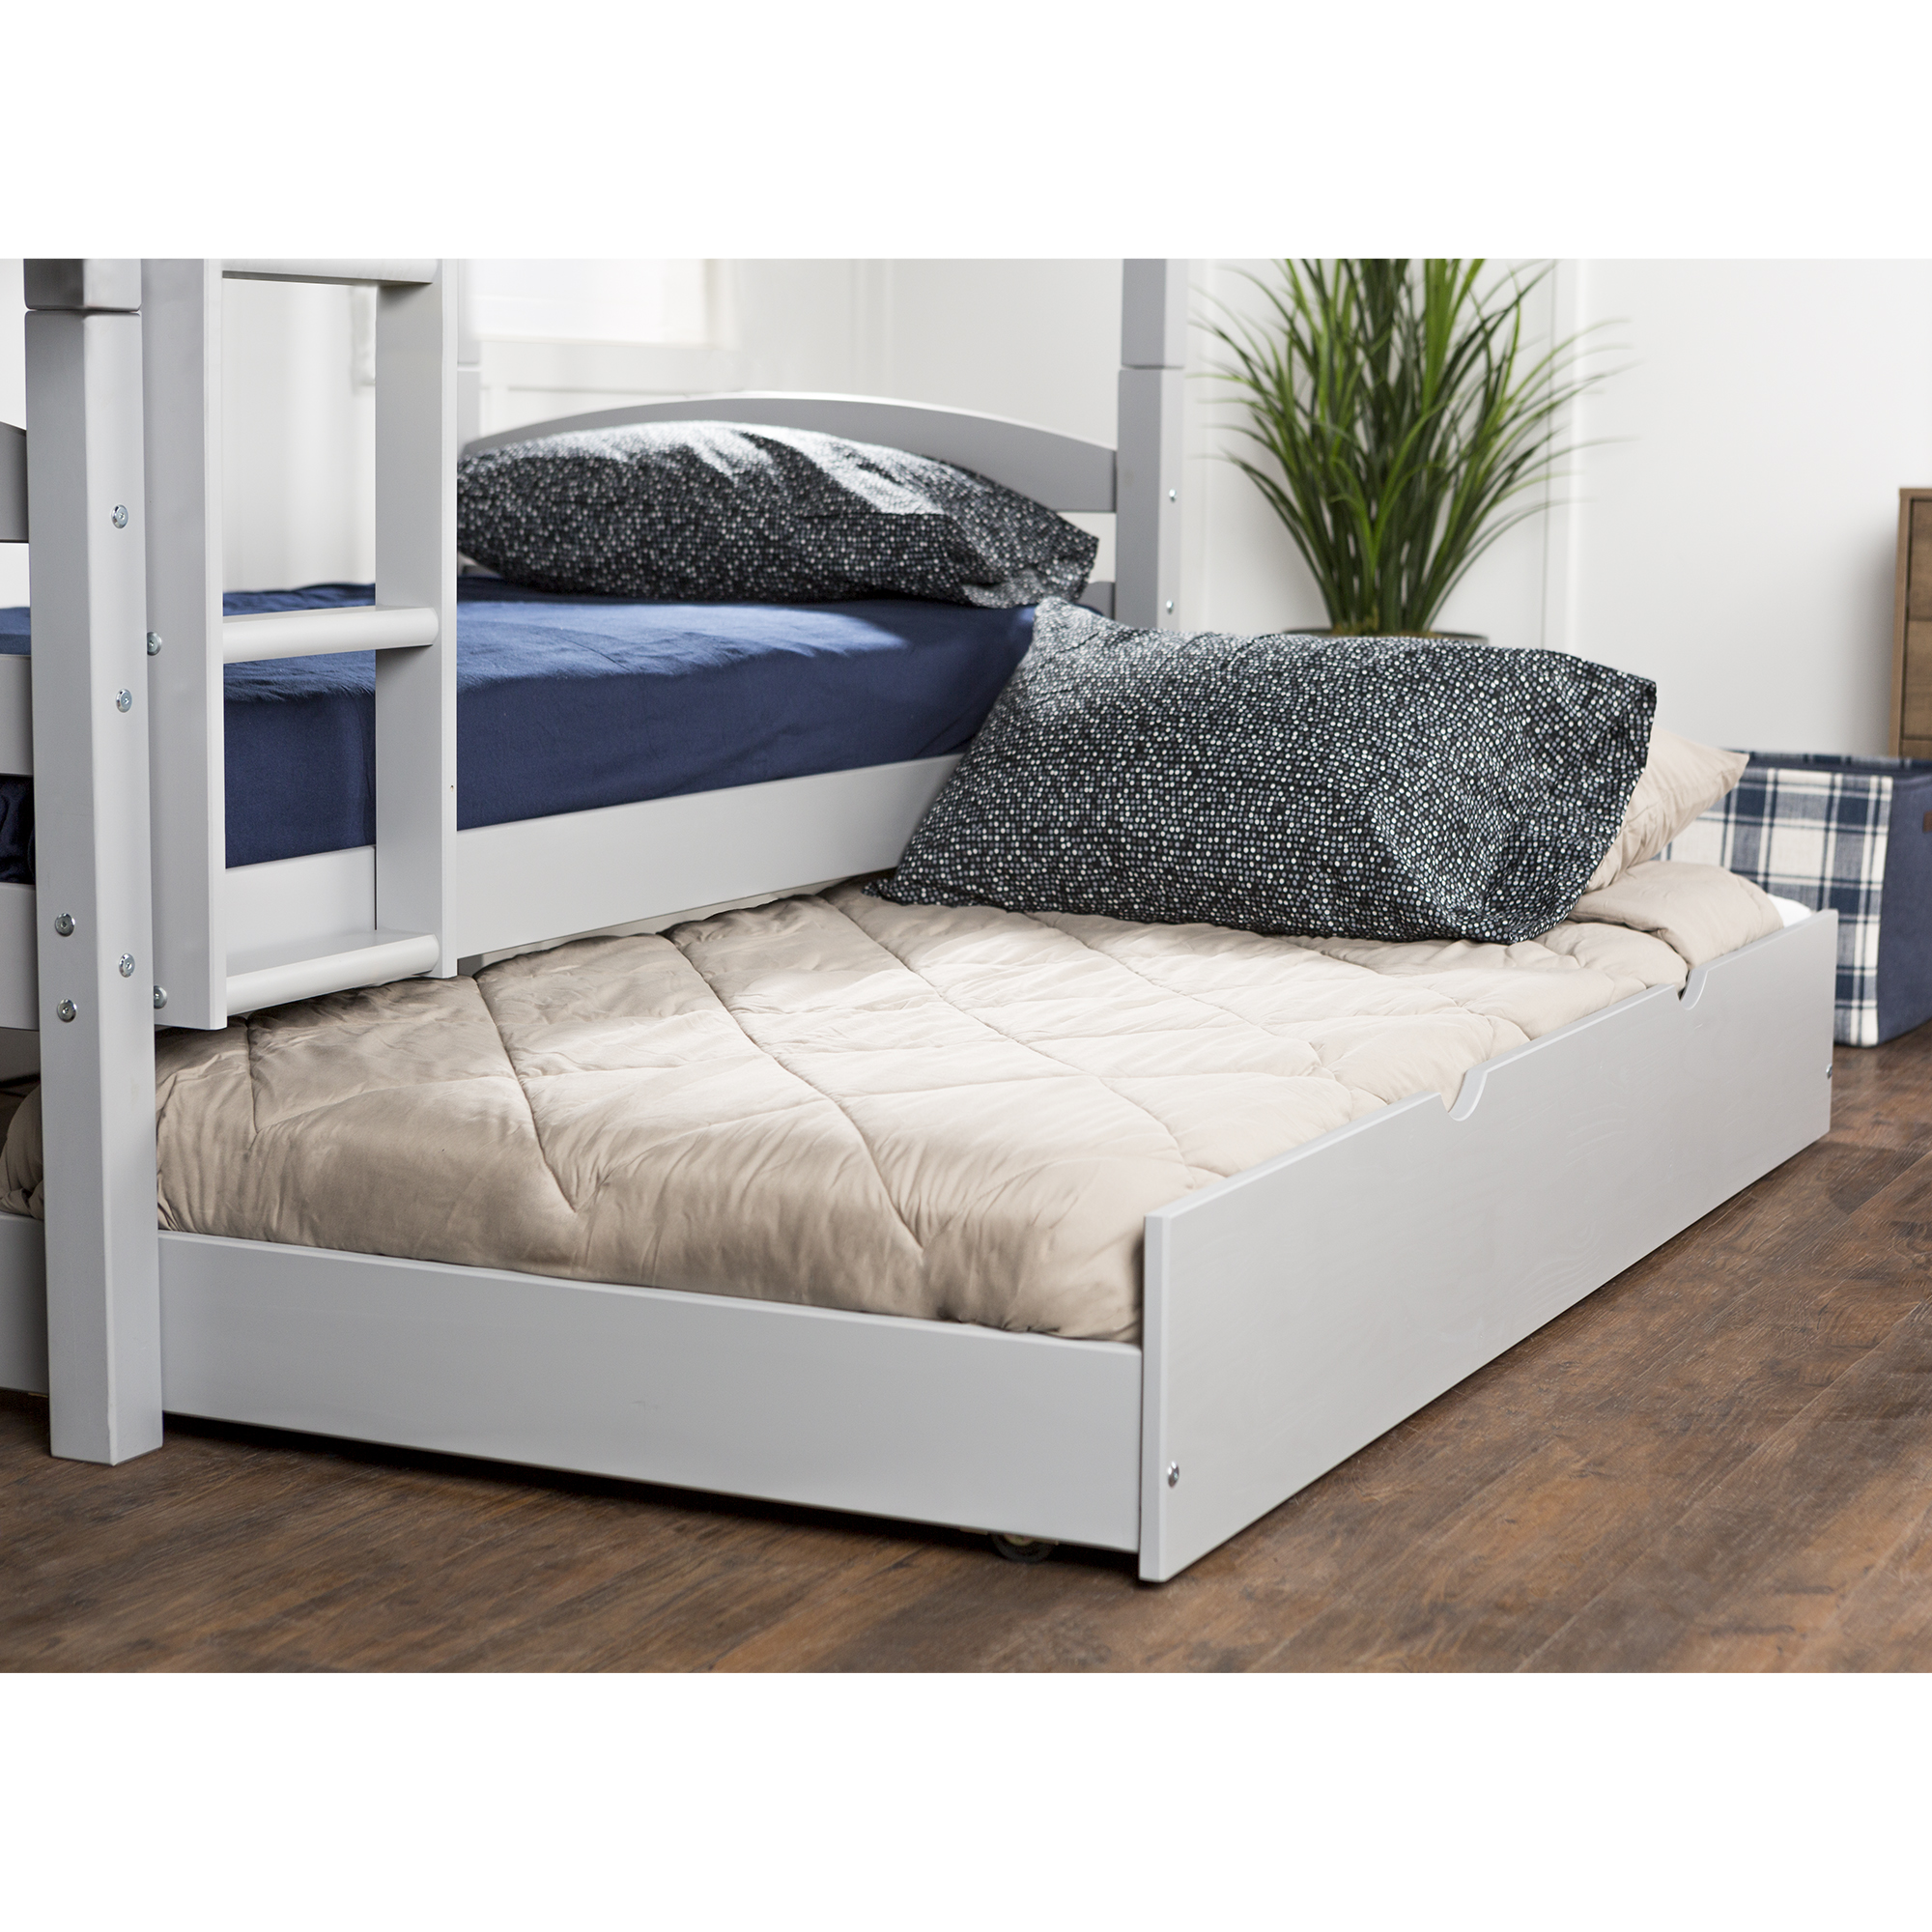 Solid Wood Twin Trundle Bed - Grey (Multiple Colors Available)